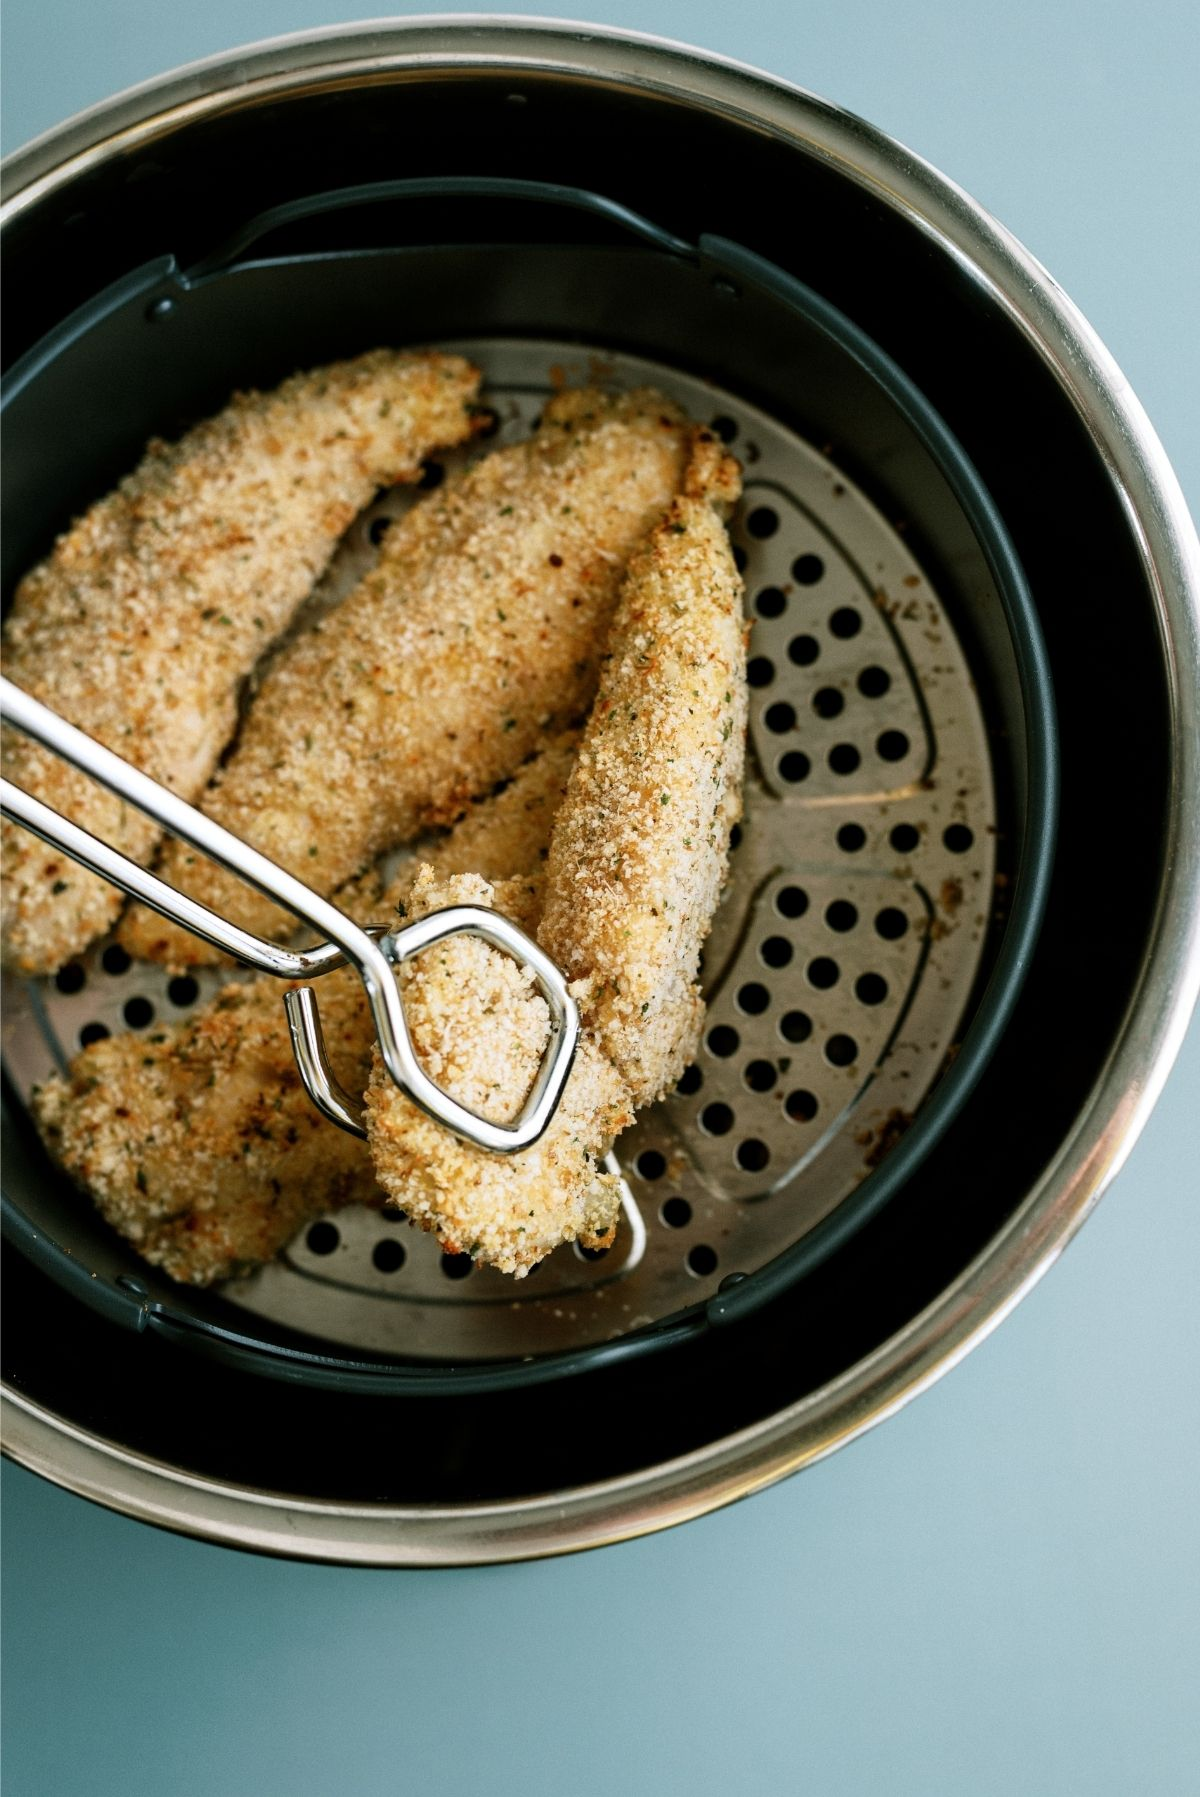 Flip tenders over to cook on other side